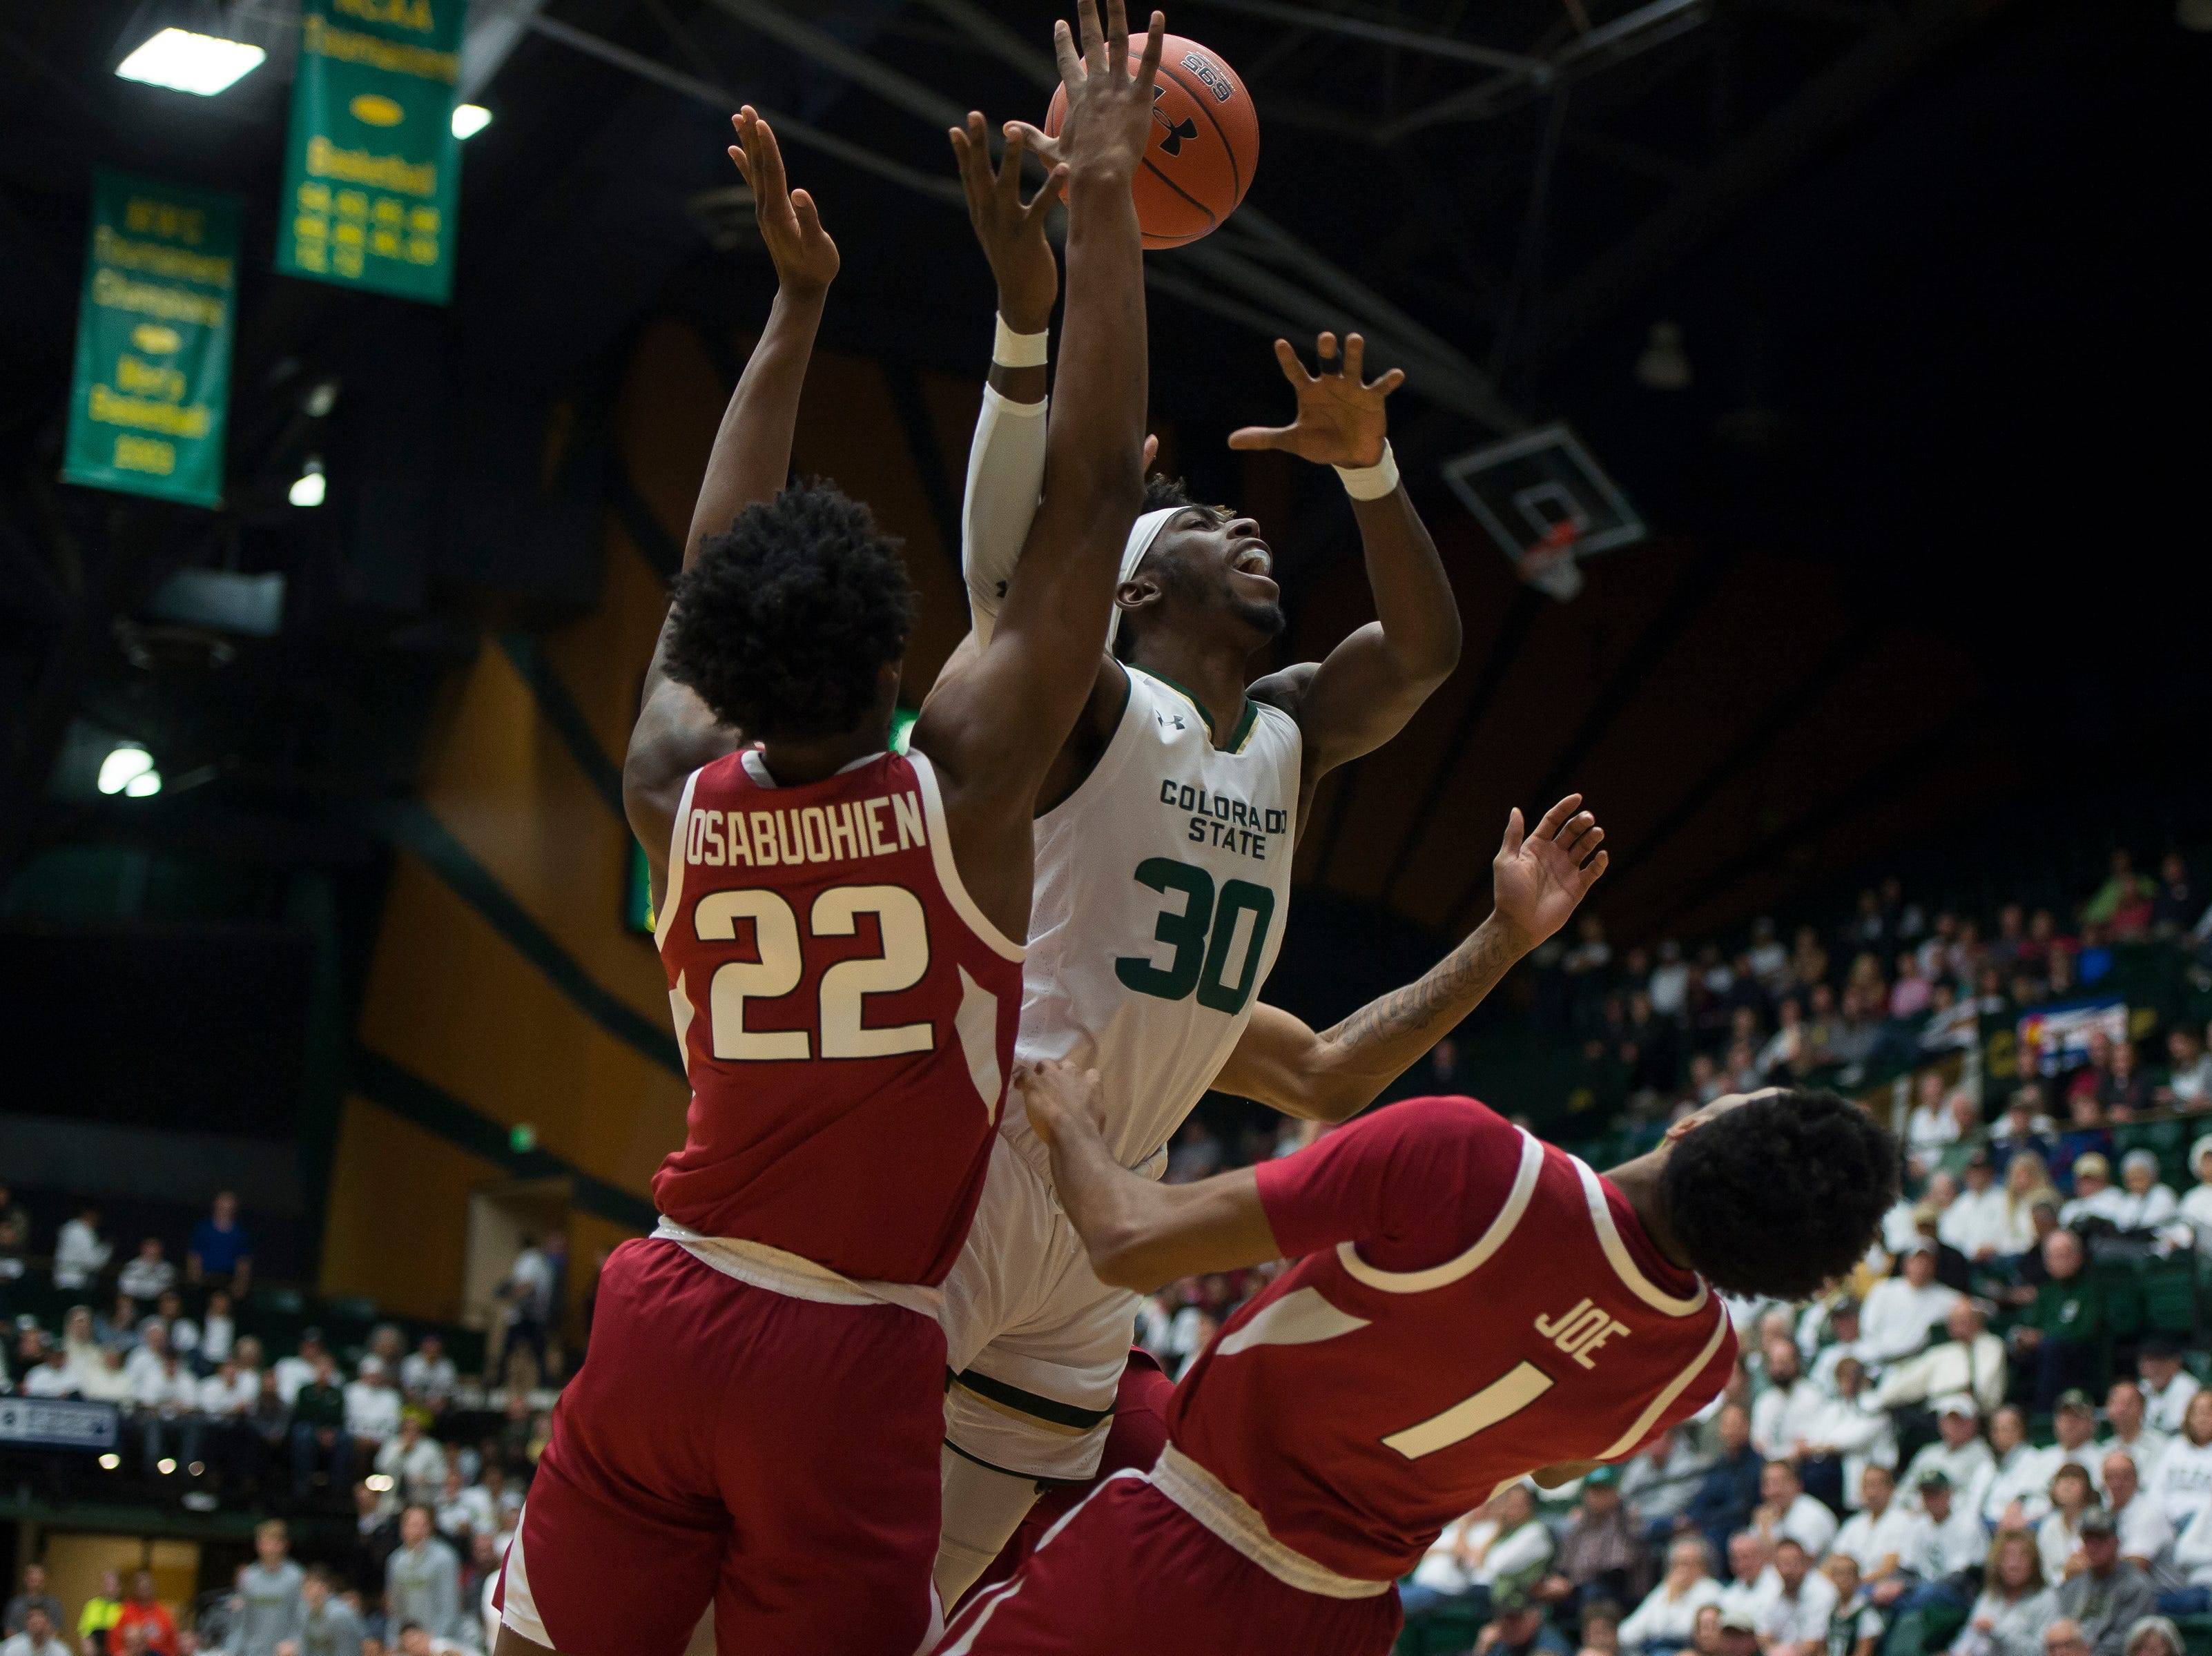 Colorado State University junior guard Kris Martin (30) is fouled during a game against Arkansas on Wednesday, Dec. 5, 2018, Moby Arena in Fort Collins, Colo.